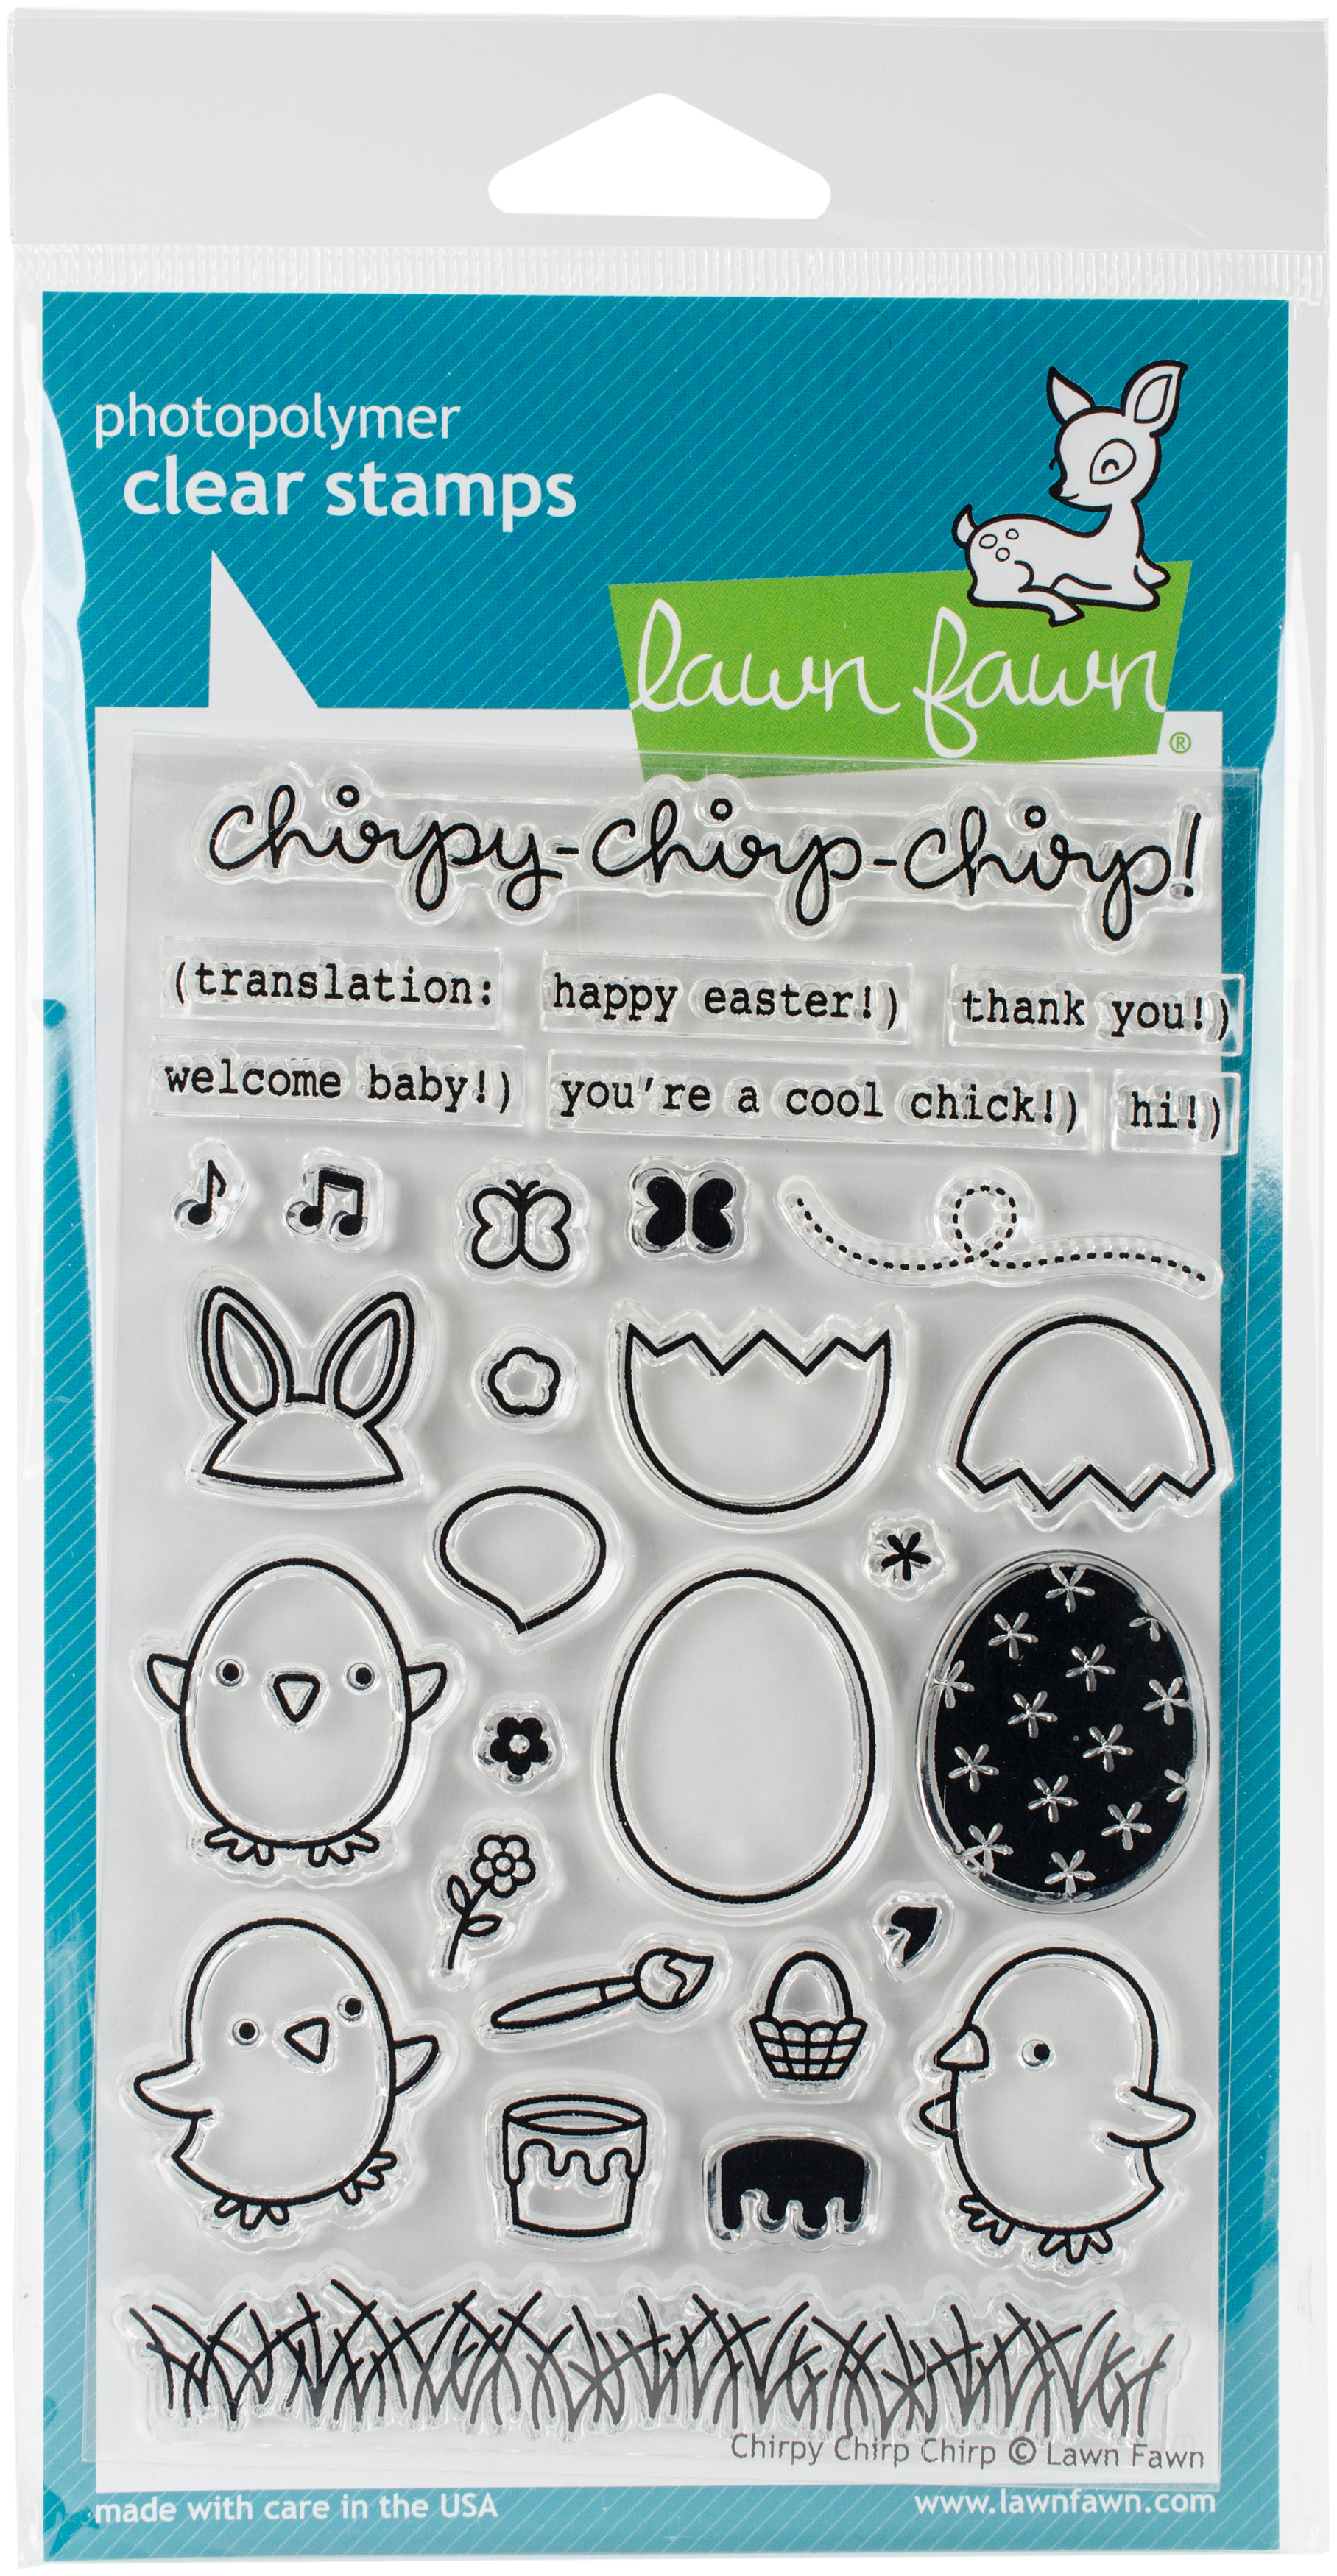 Lawn Fawn Clear Stamps 4X6-Chirpy Chirp Chirp